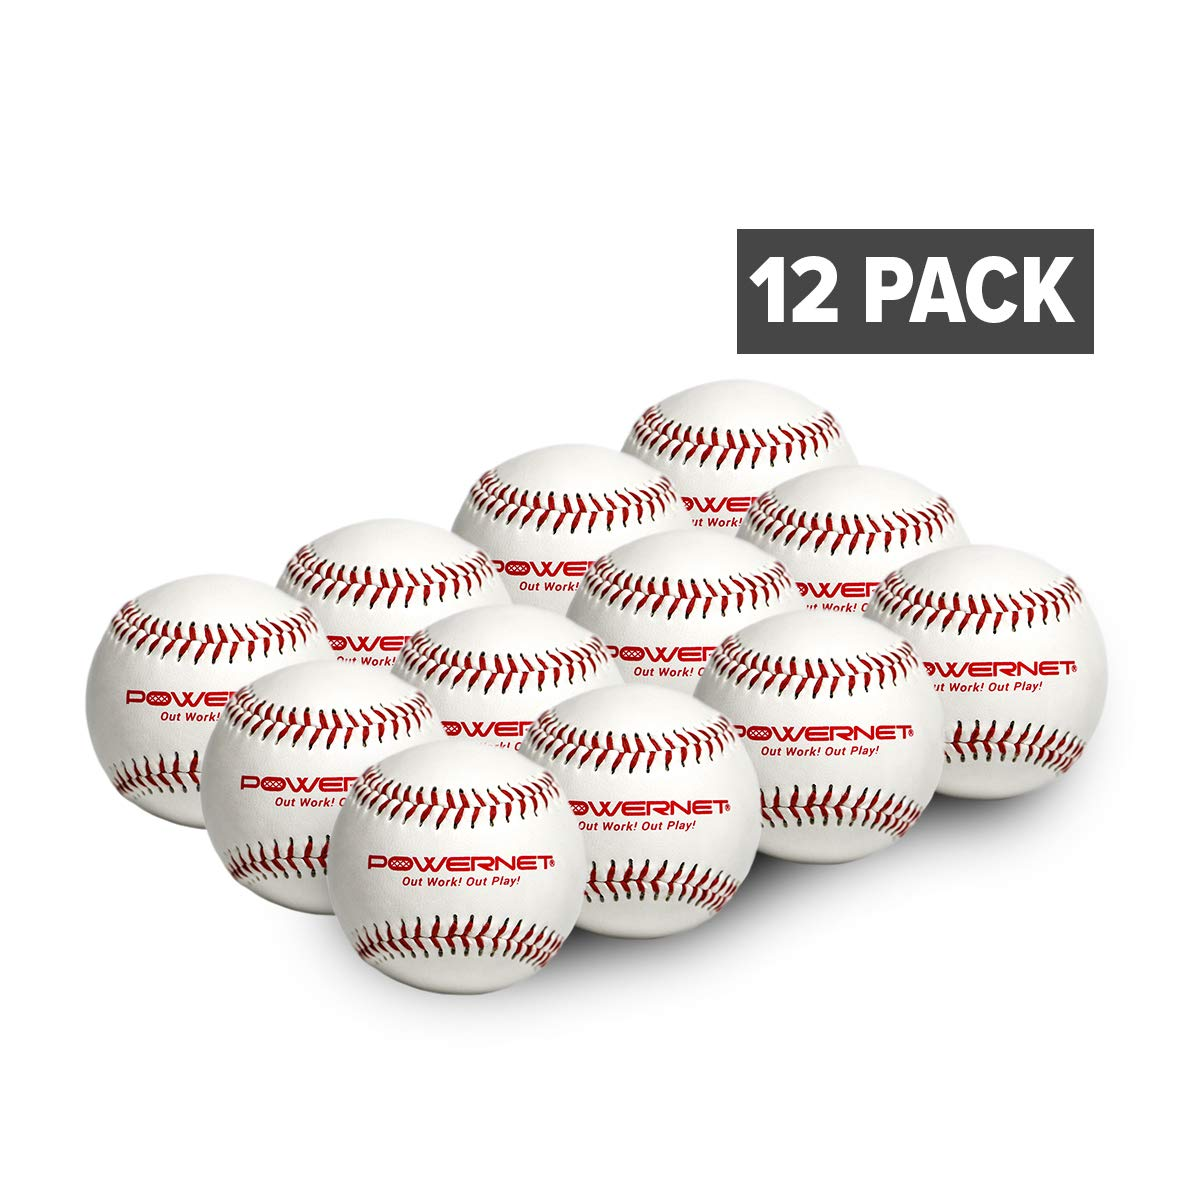 PowerNet Practice Baseballs | 12 PK Recreation Grade Regulation Size Balls | Perfect for Baseball Soft Toss, Batting, Fielding, Hitting, Pitching, Practice or Training | White Cover with Red Seams